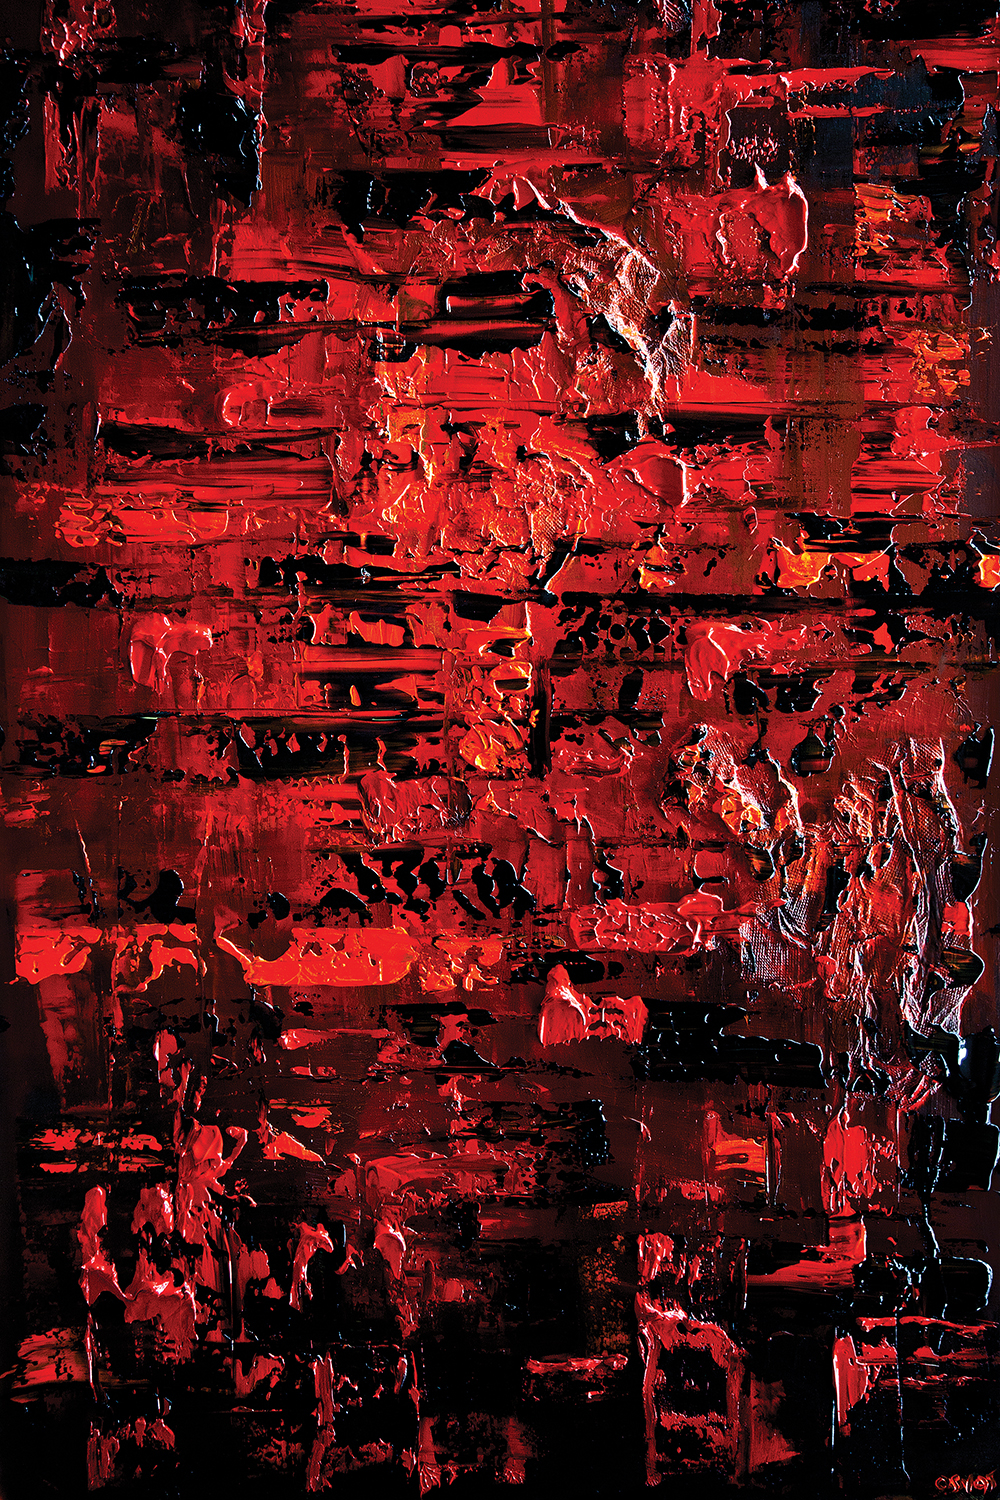 Abstract textured image in shades of red